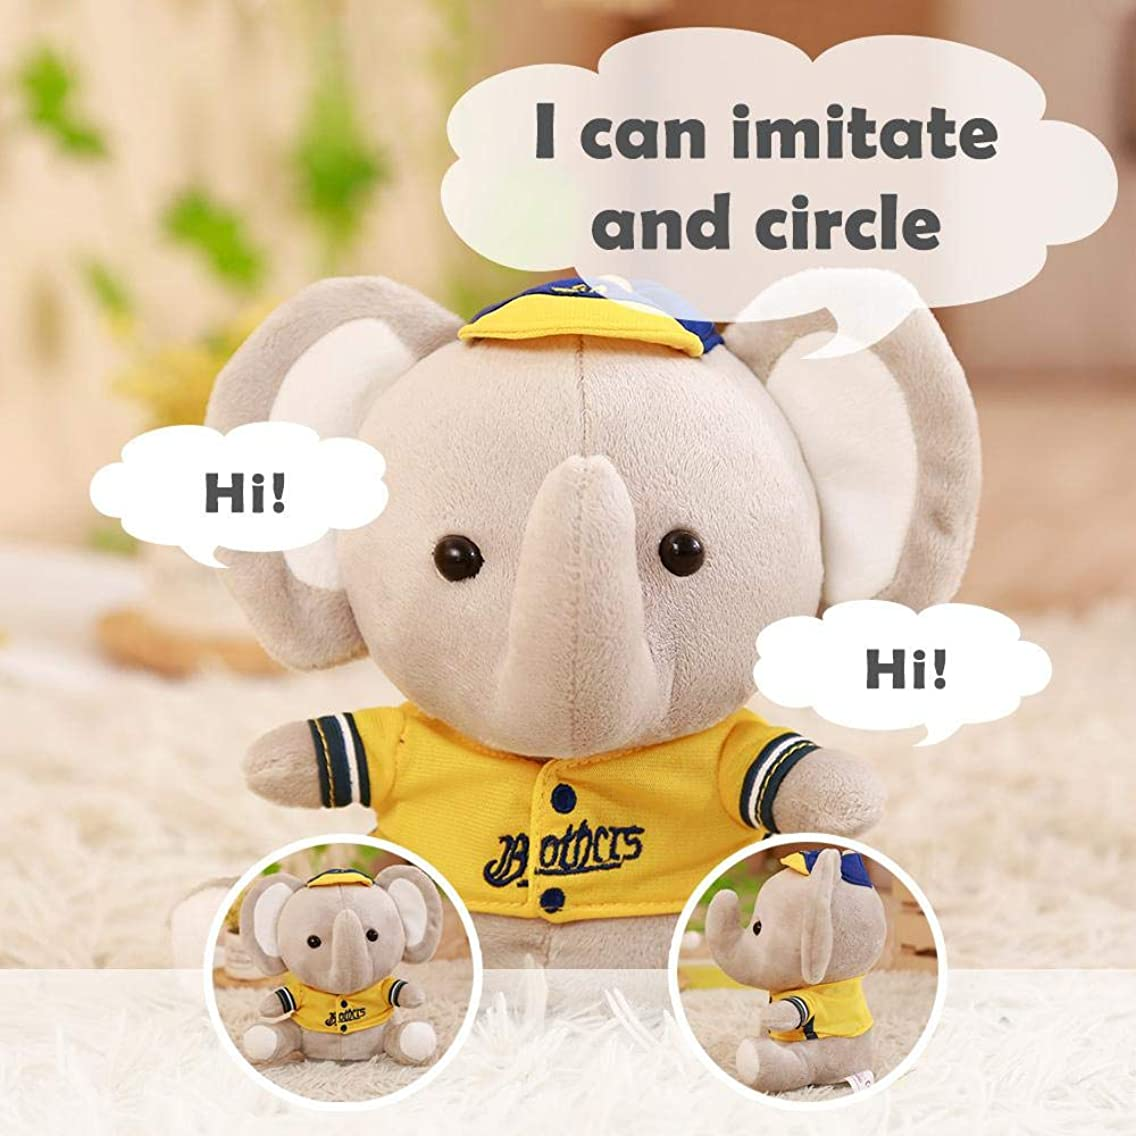 Womdee Plush Talking Toy, Electric Elephant Plush Toy Plush Toy Singing Stuffed Animals, Repeats What You Say, Interactive Doll for Boy and Girl